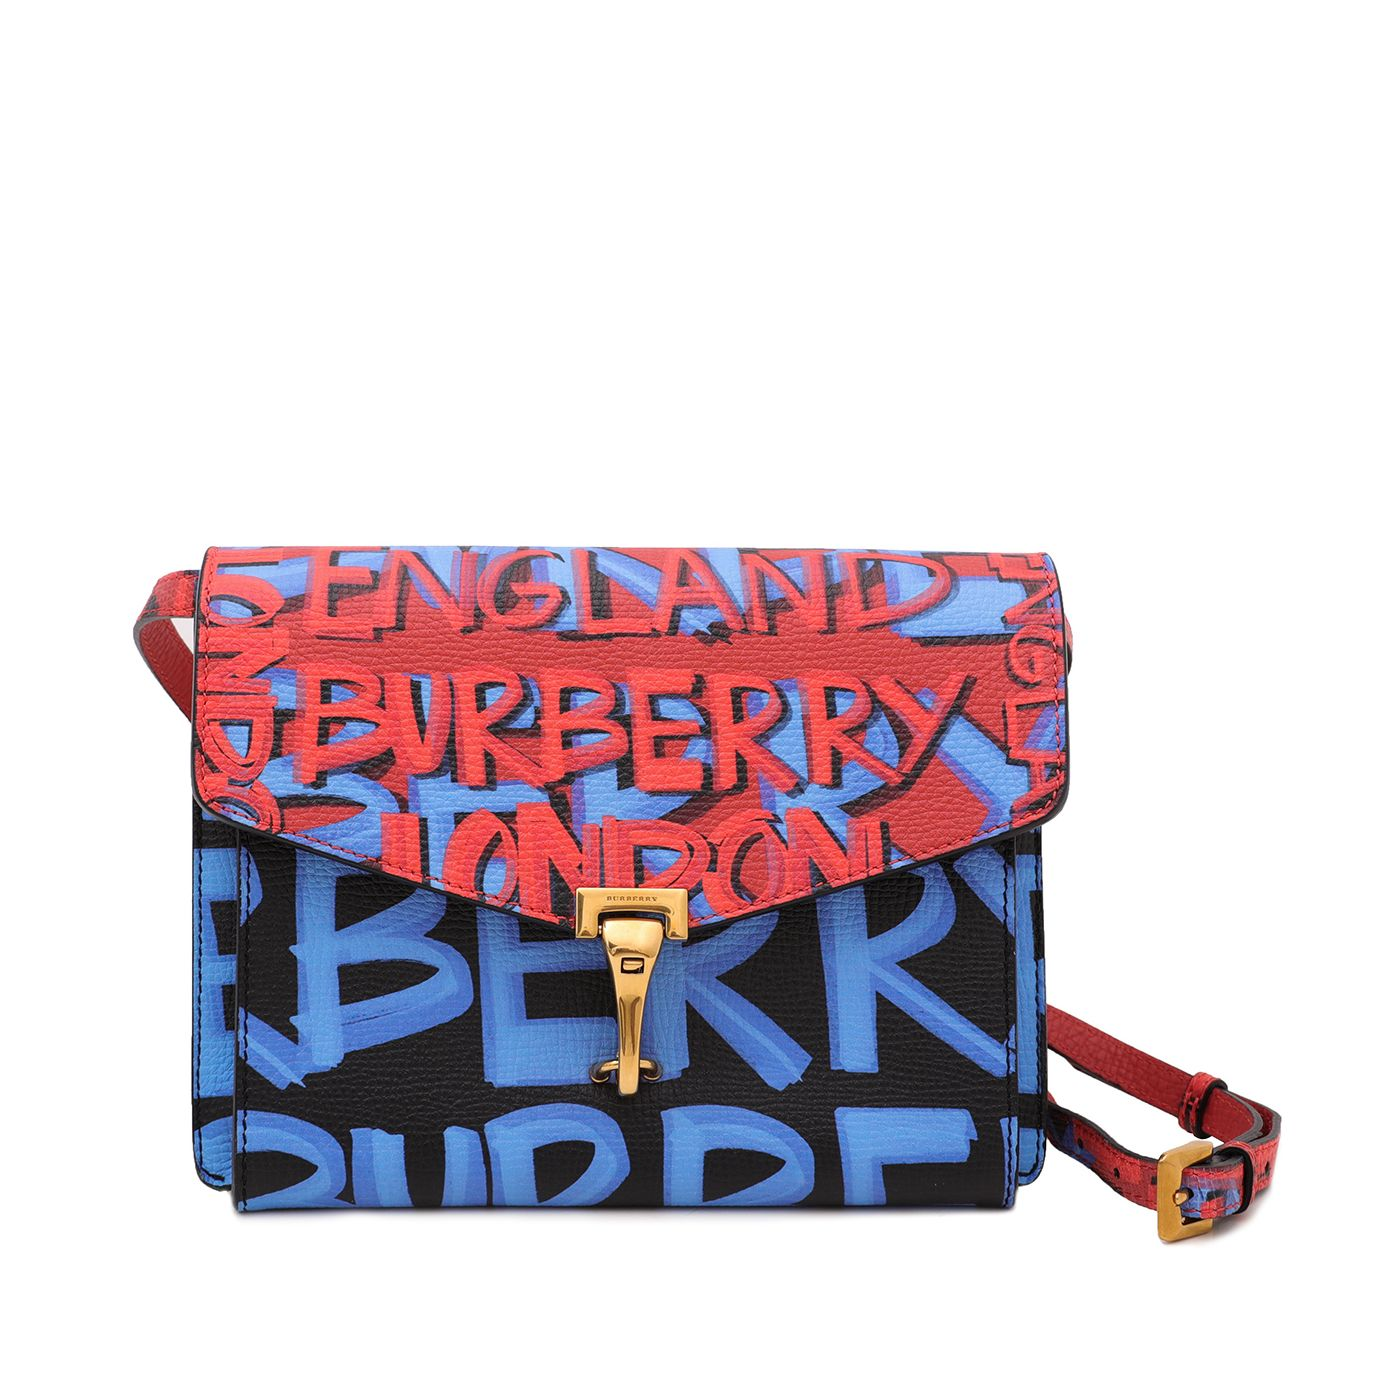 Burberry Tricolor Graffiti Print Macken Crossbody Bag